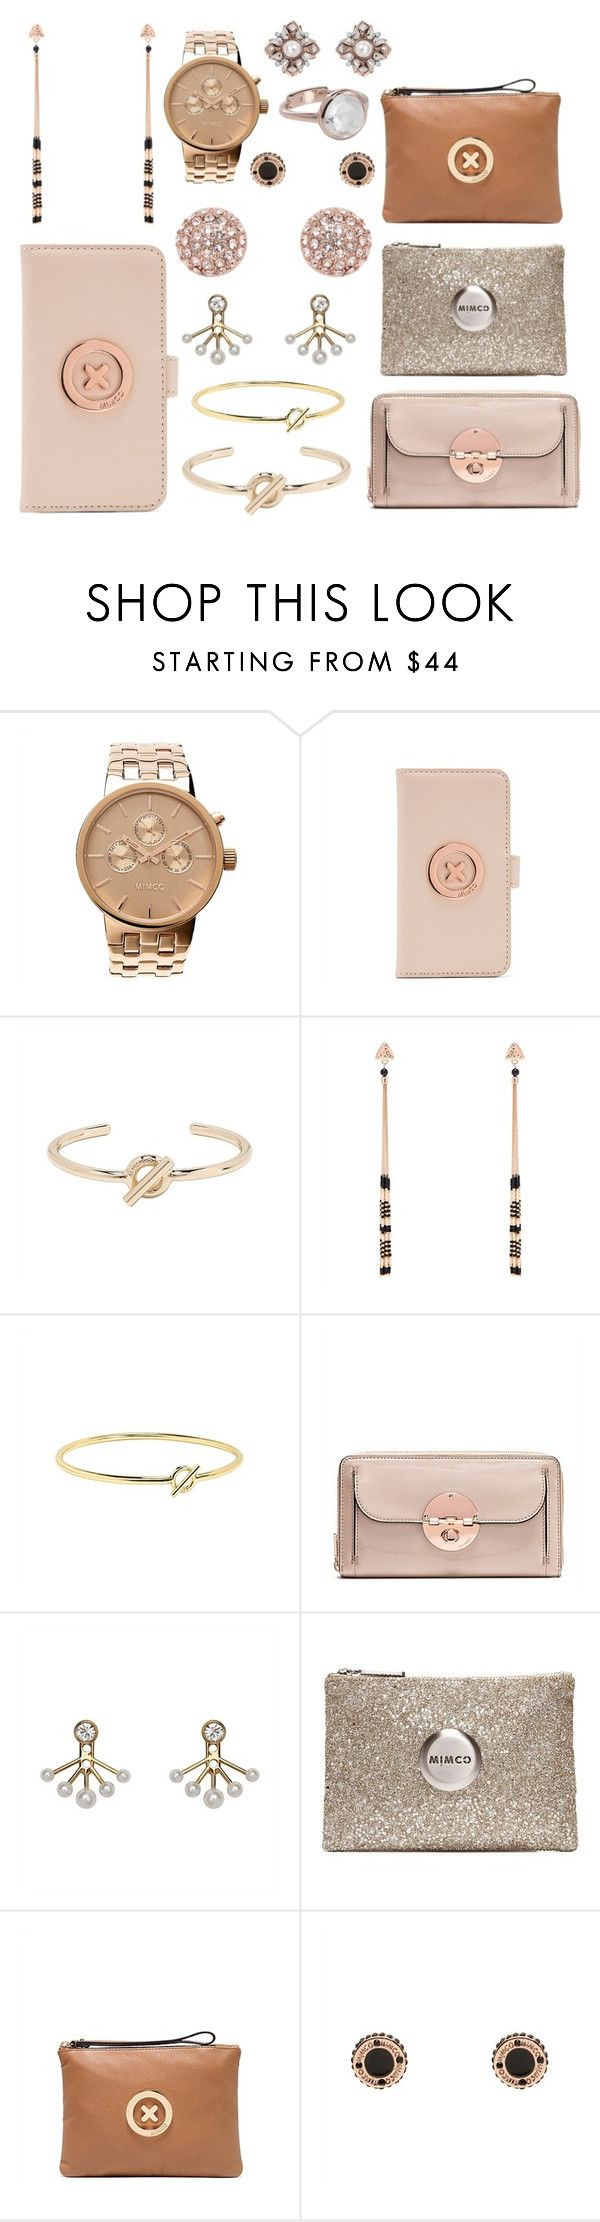 """Featured Brand: Mimco"" by stephanie-rozek-paris ❤ liked on Polyvore featuring Mimco"